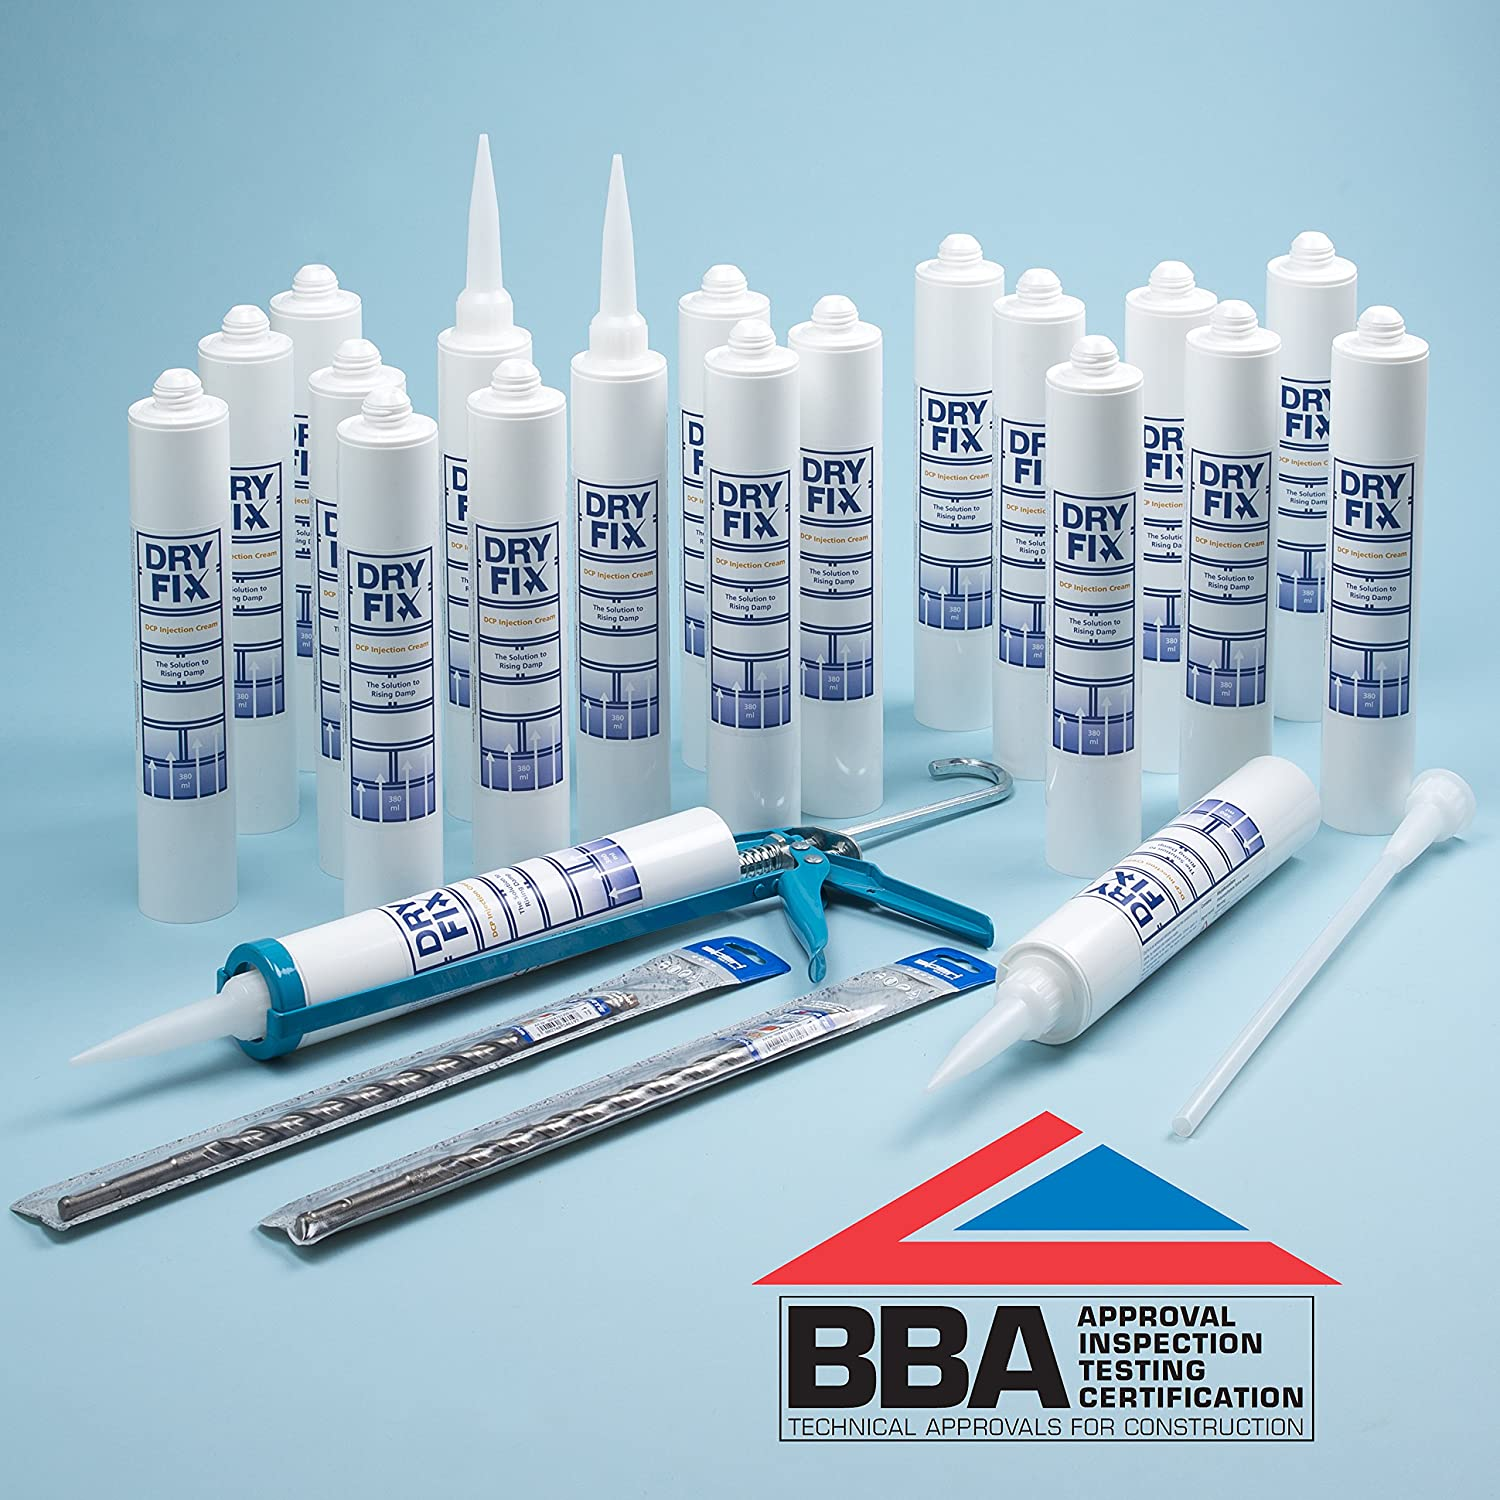 DryFix DPC Damp Proofing Injection Cream 380ml BBA x 20 Kit with Free Snip-Off Tool Alliance Remedial Supplies Limited